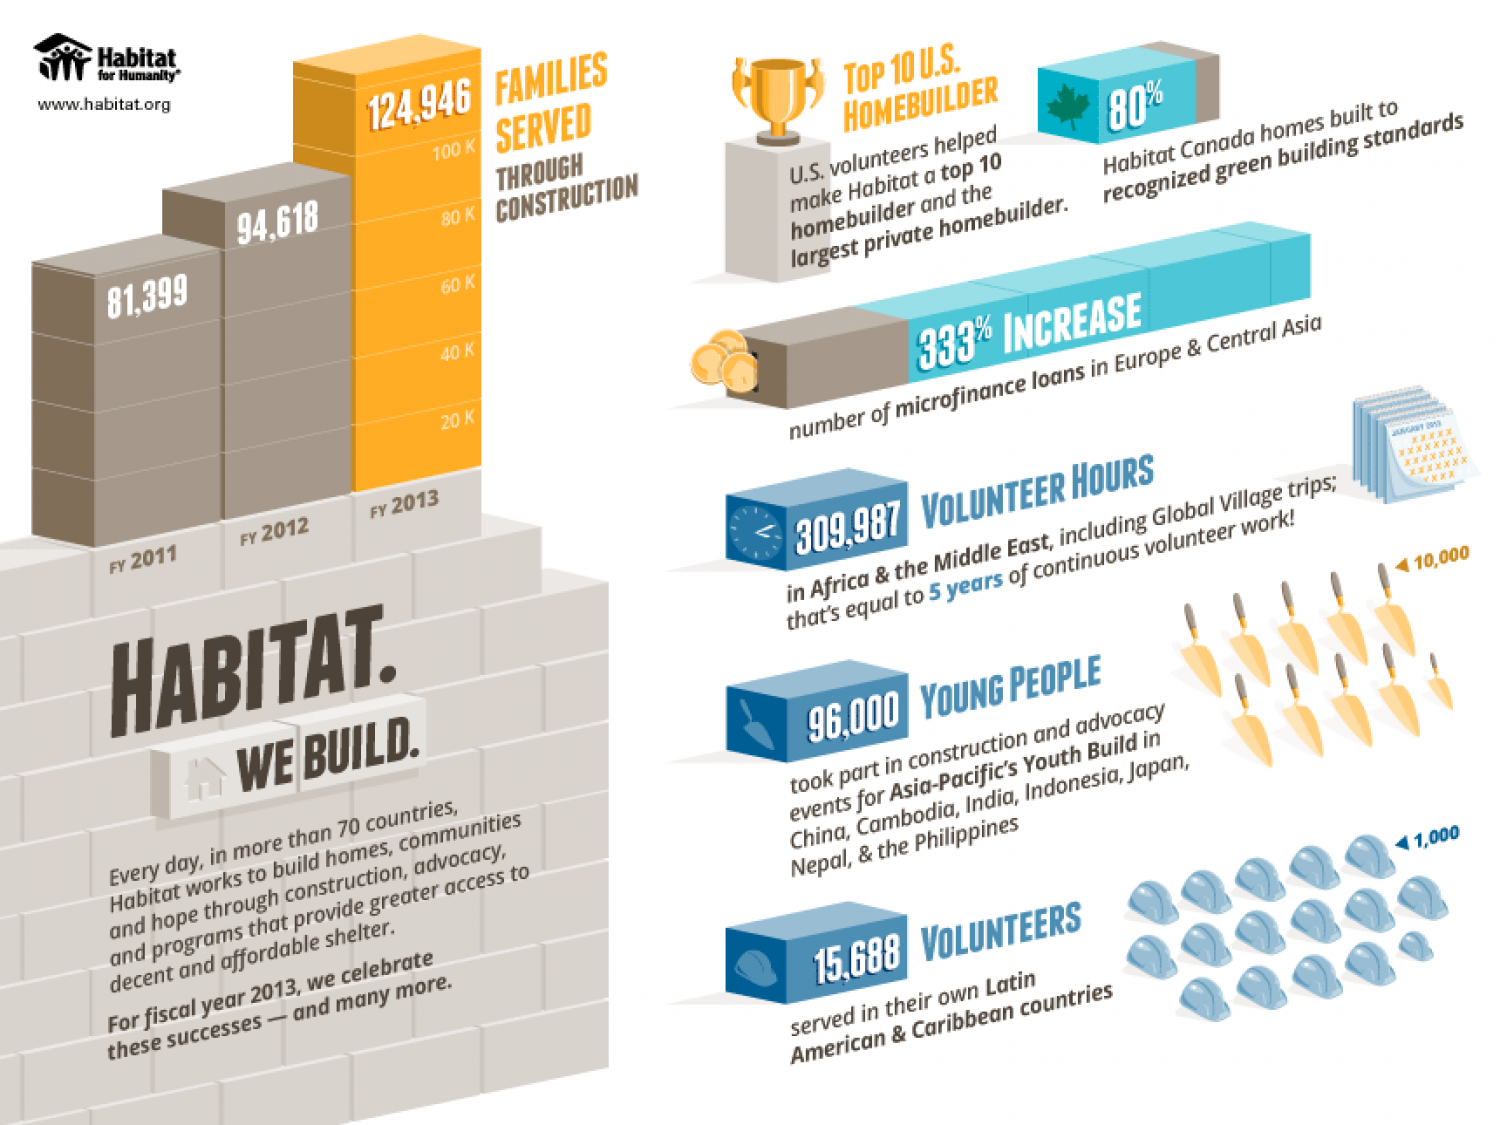 Habitat. We Build. Infographic